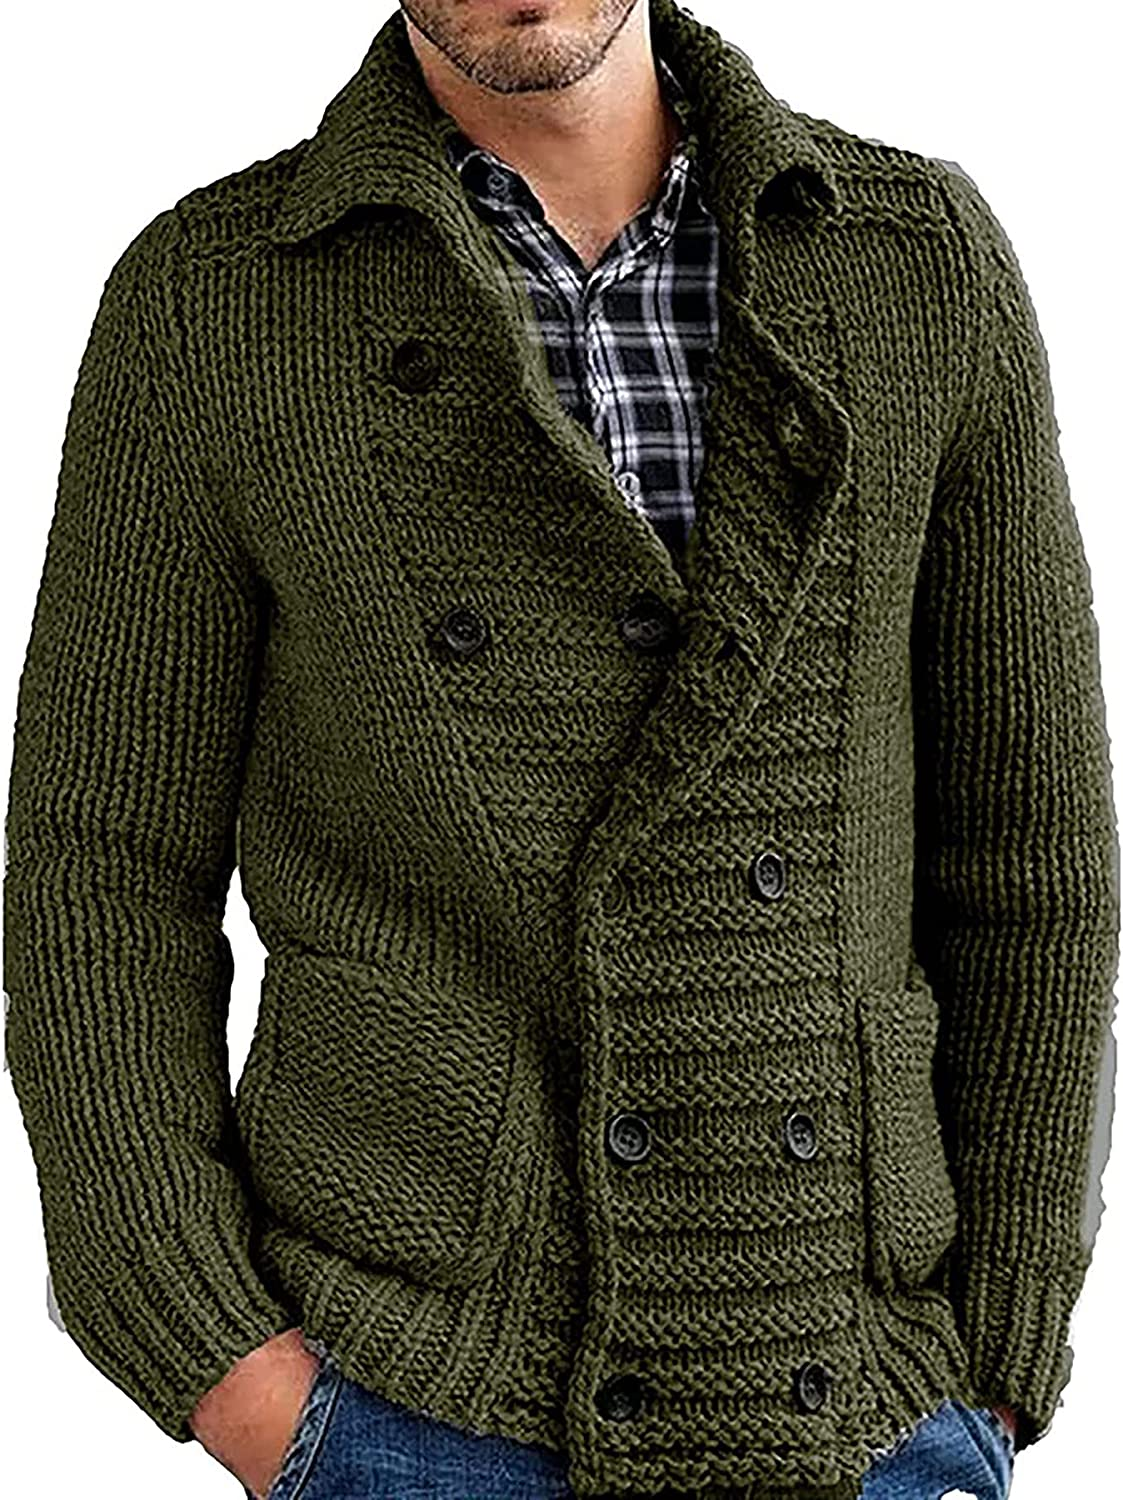 Men's Casual Lapel Double Breasted Cardigan Knitted Button Fall Winter Sweaters with Pockets